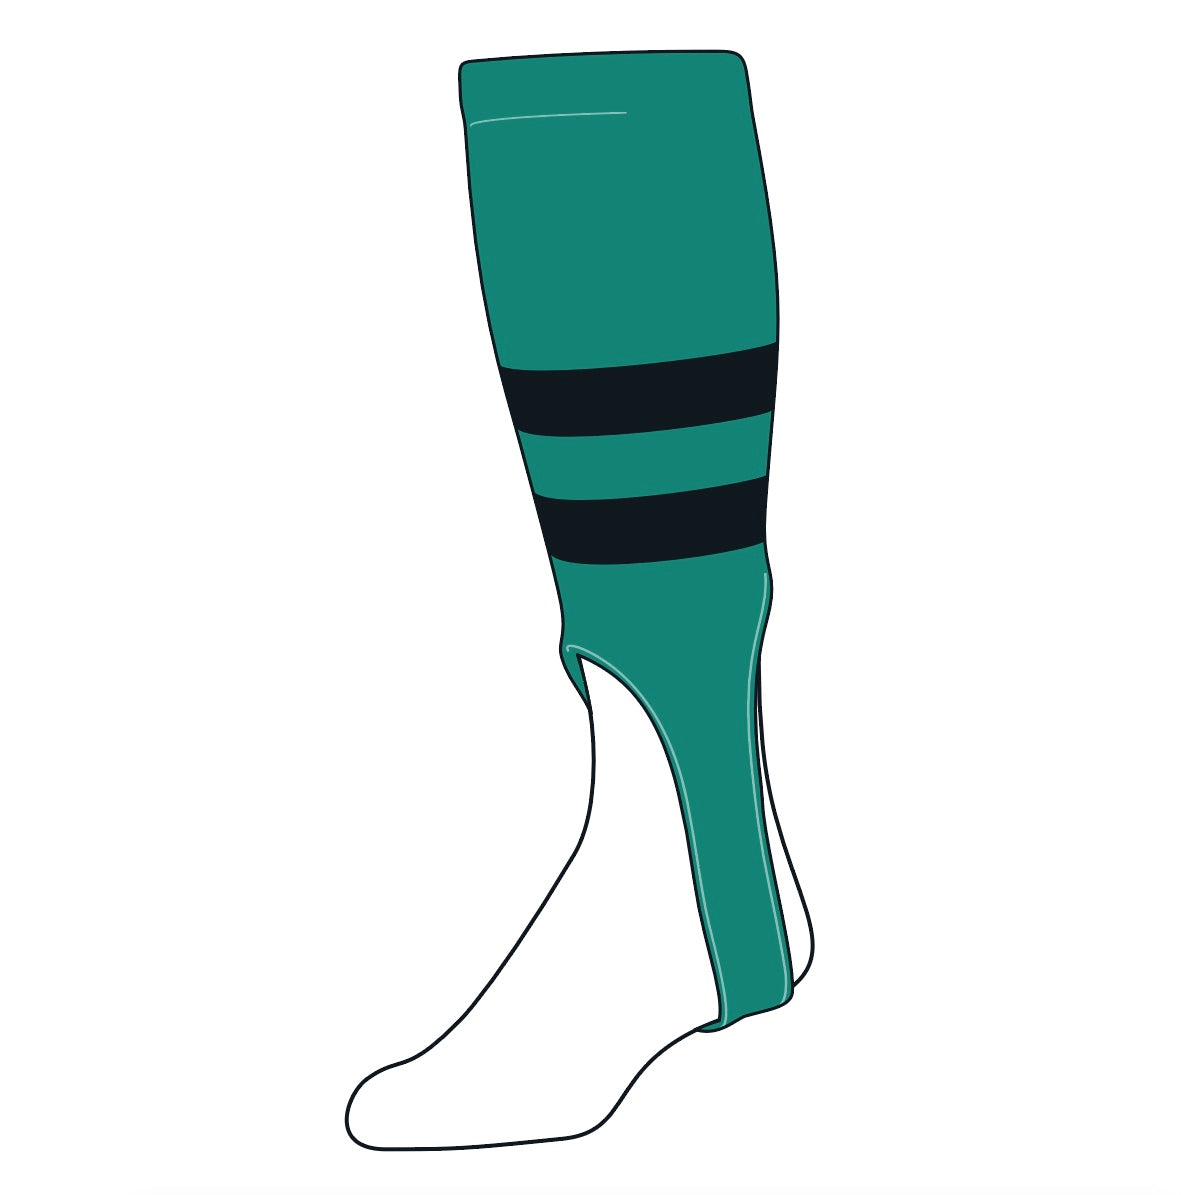 TCK Baseball Stirrups Medium (200G, 7in) Teal, Black, Teal